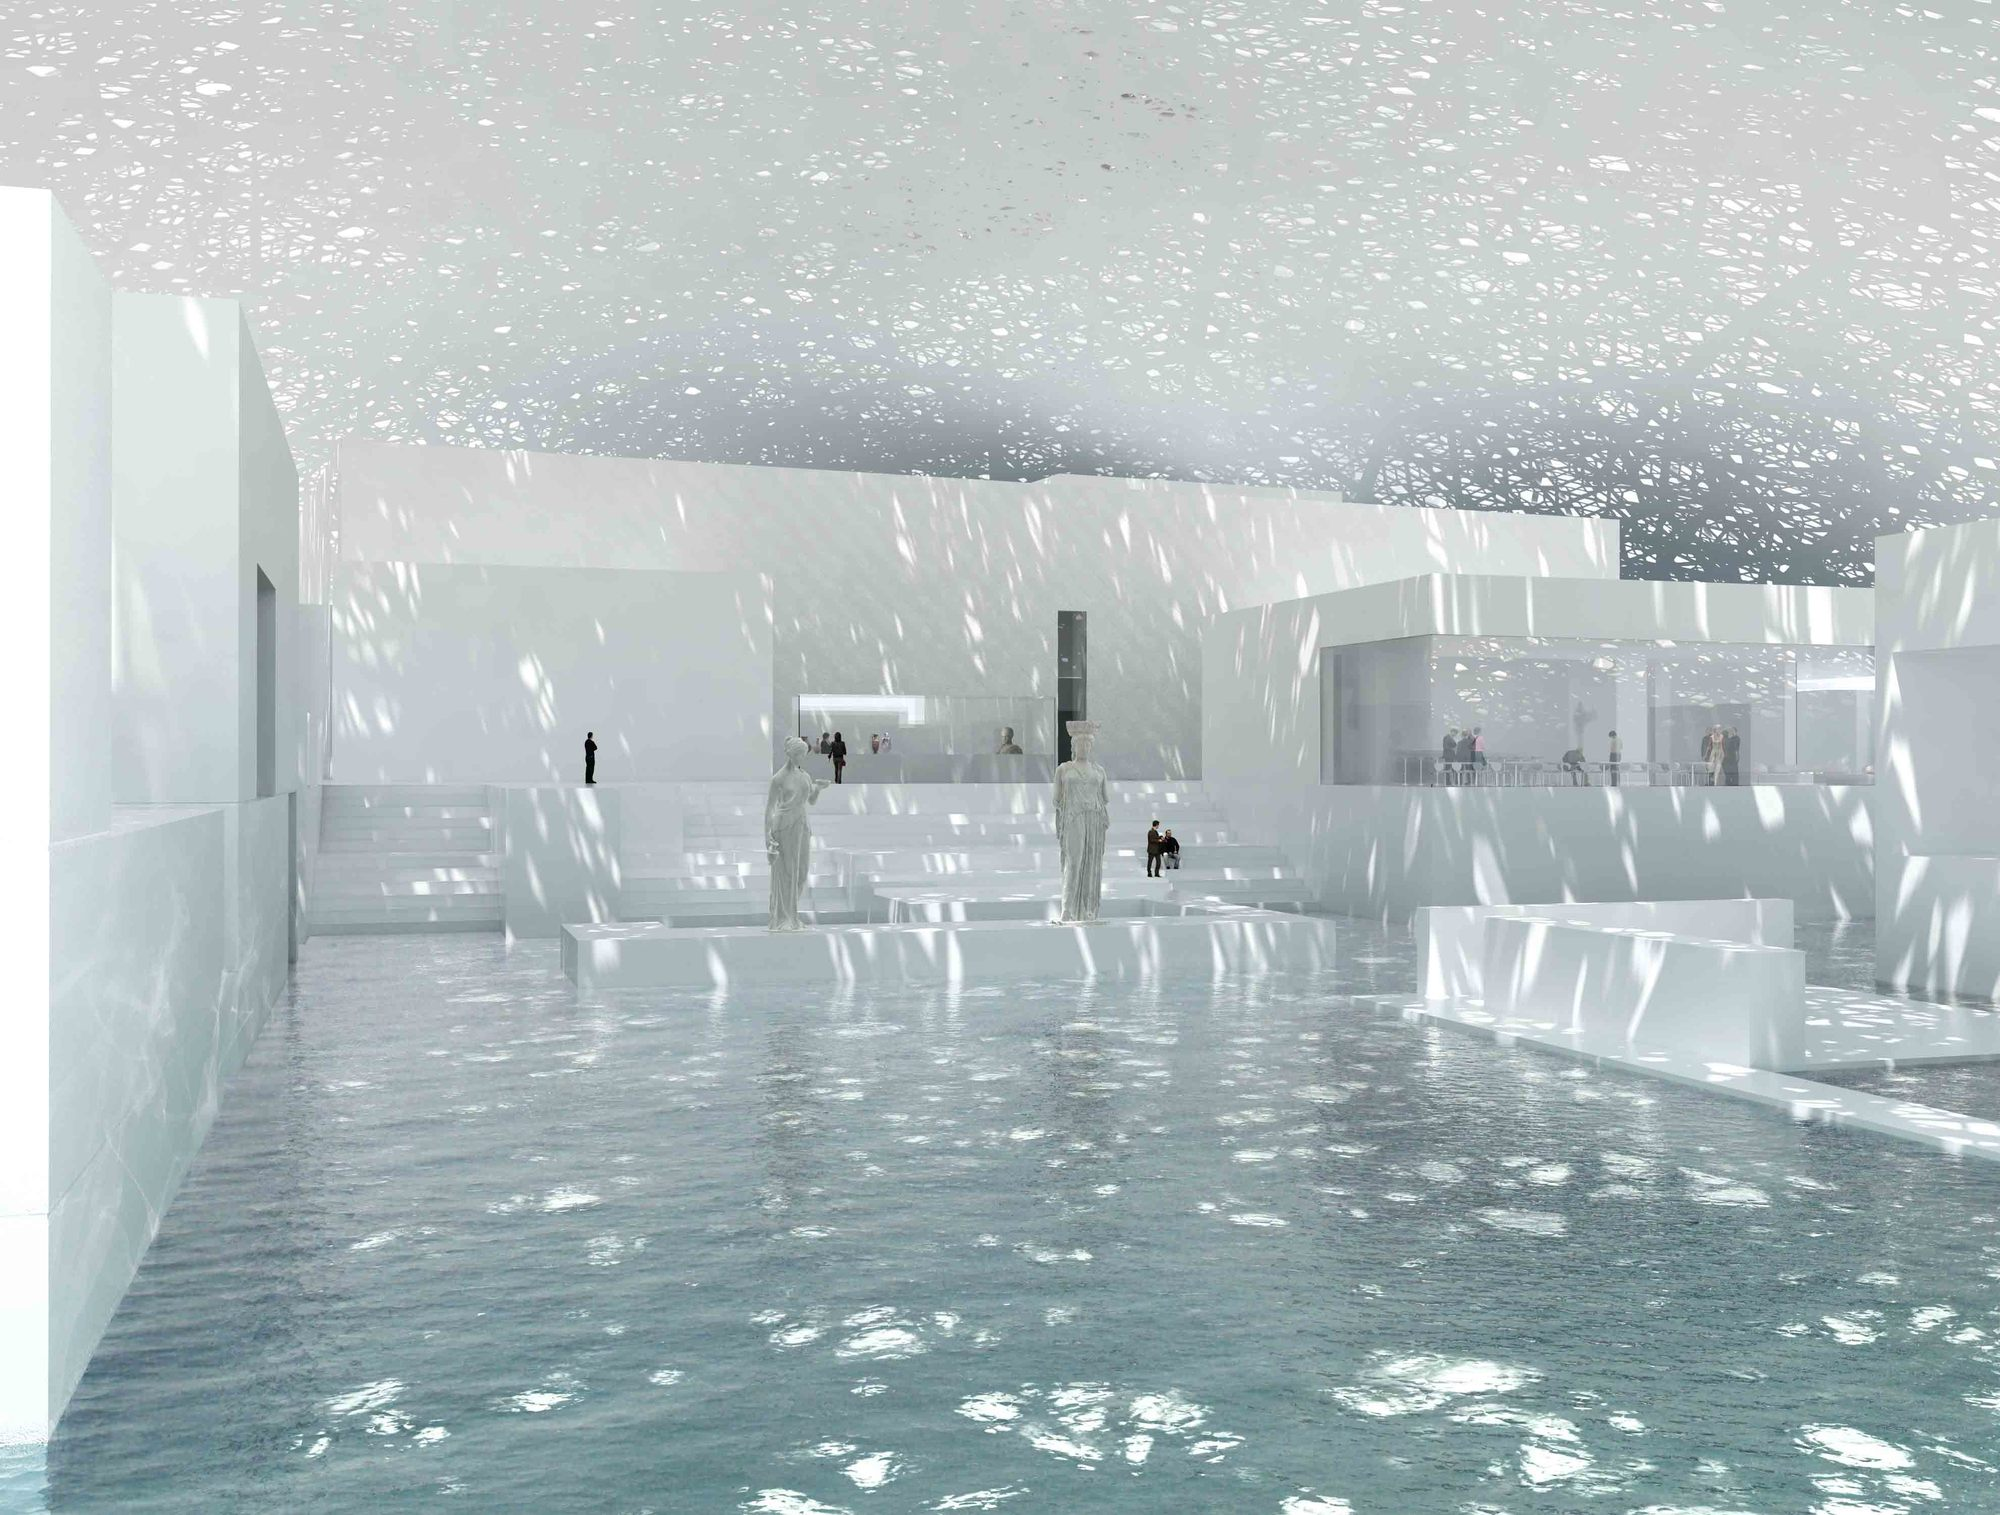 The louvre abu dhabi museum ateliers jean nouvel archdaily for Architecture jean nouvel